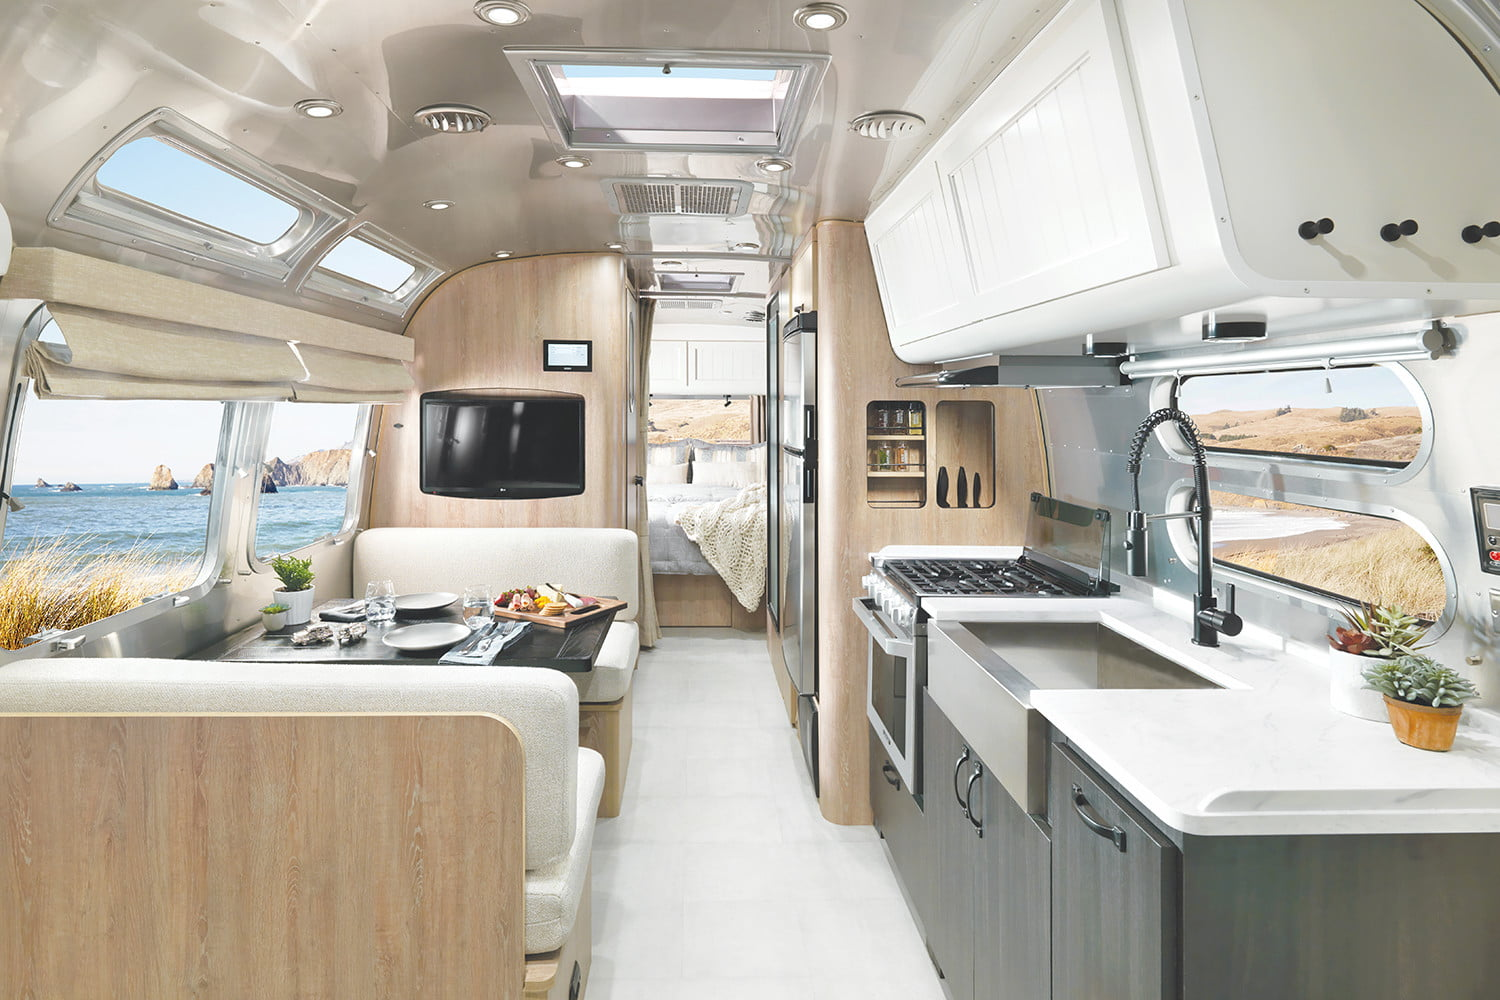 Airstream and Pottery Barn Trailer